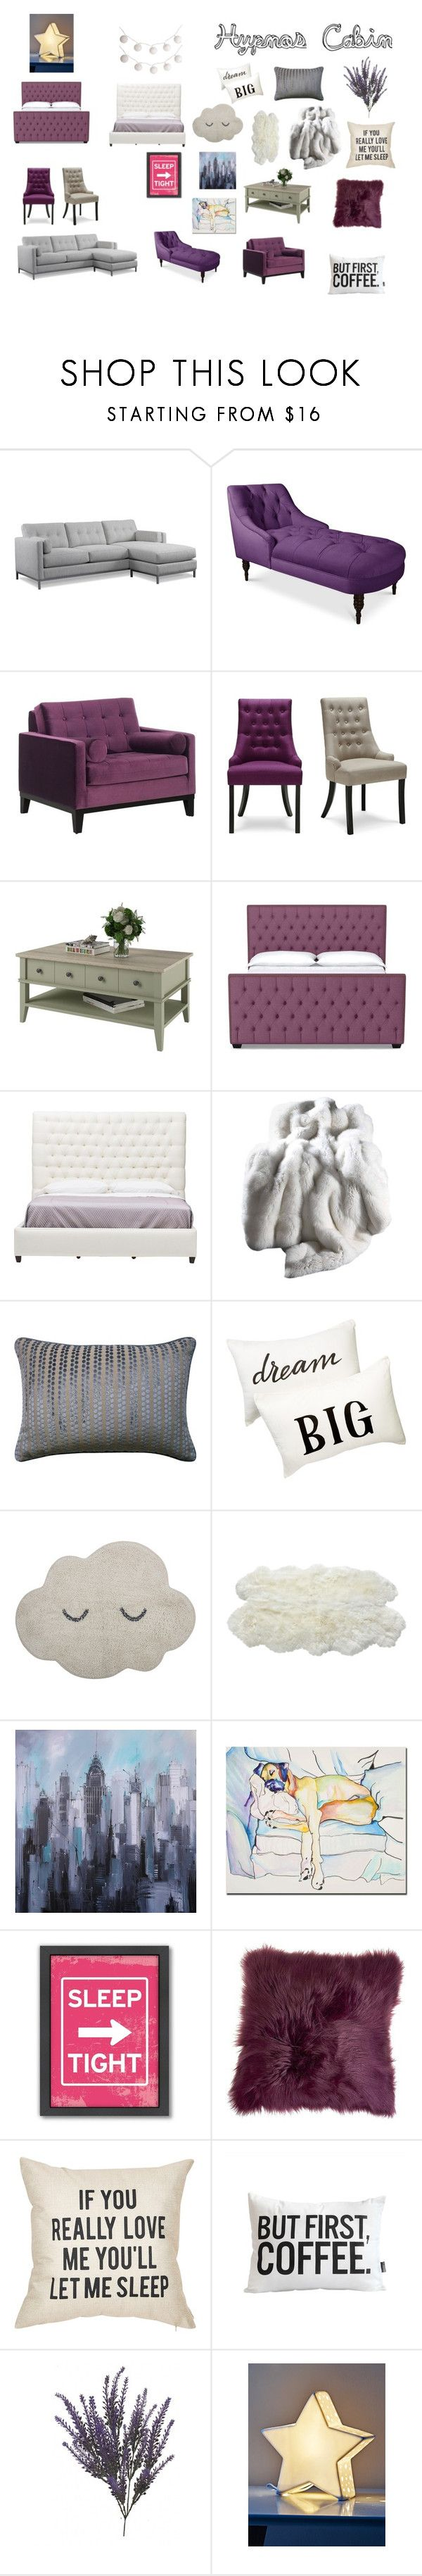 """hypnos cabin"" by julia-a-grossman ❤ liked on Polyvore featuring interior, interiors, interior design, home, home decor, interior decorating, DutchCrafters, Armen Living, Nordstrom Rack and Bloomingville"